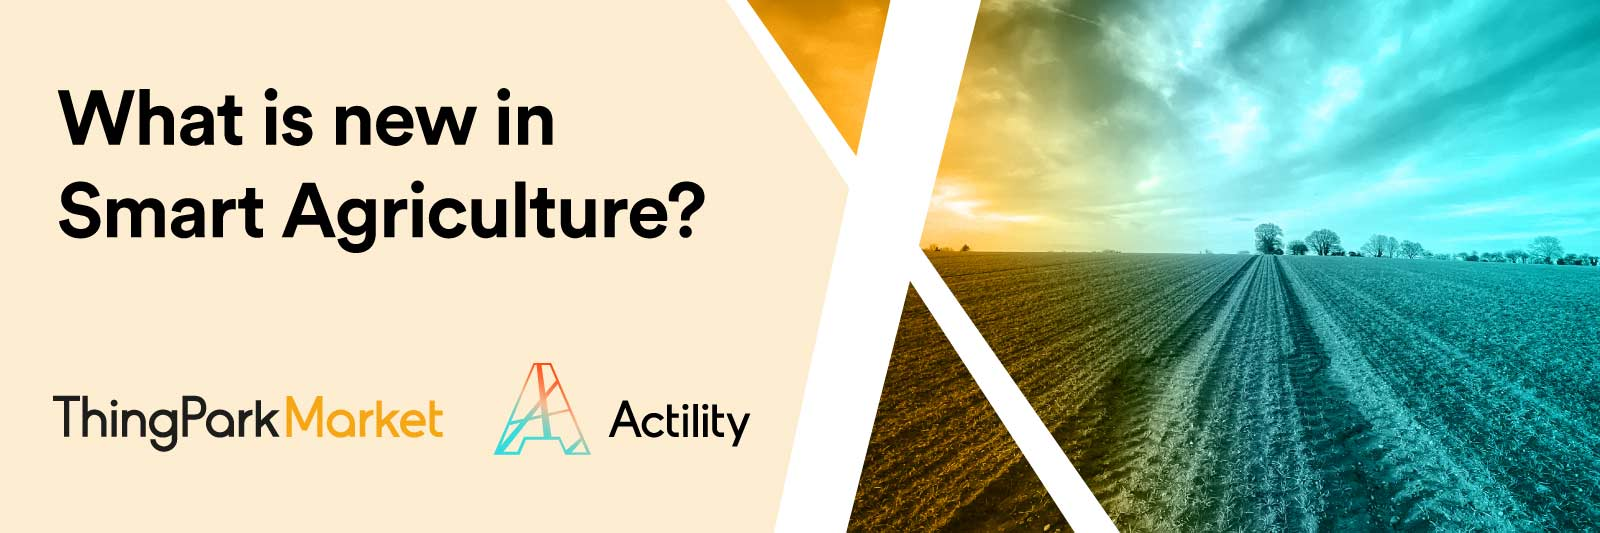 What is new in Smart Agriculture?